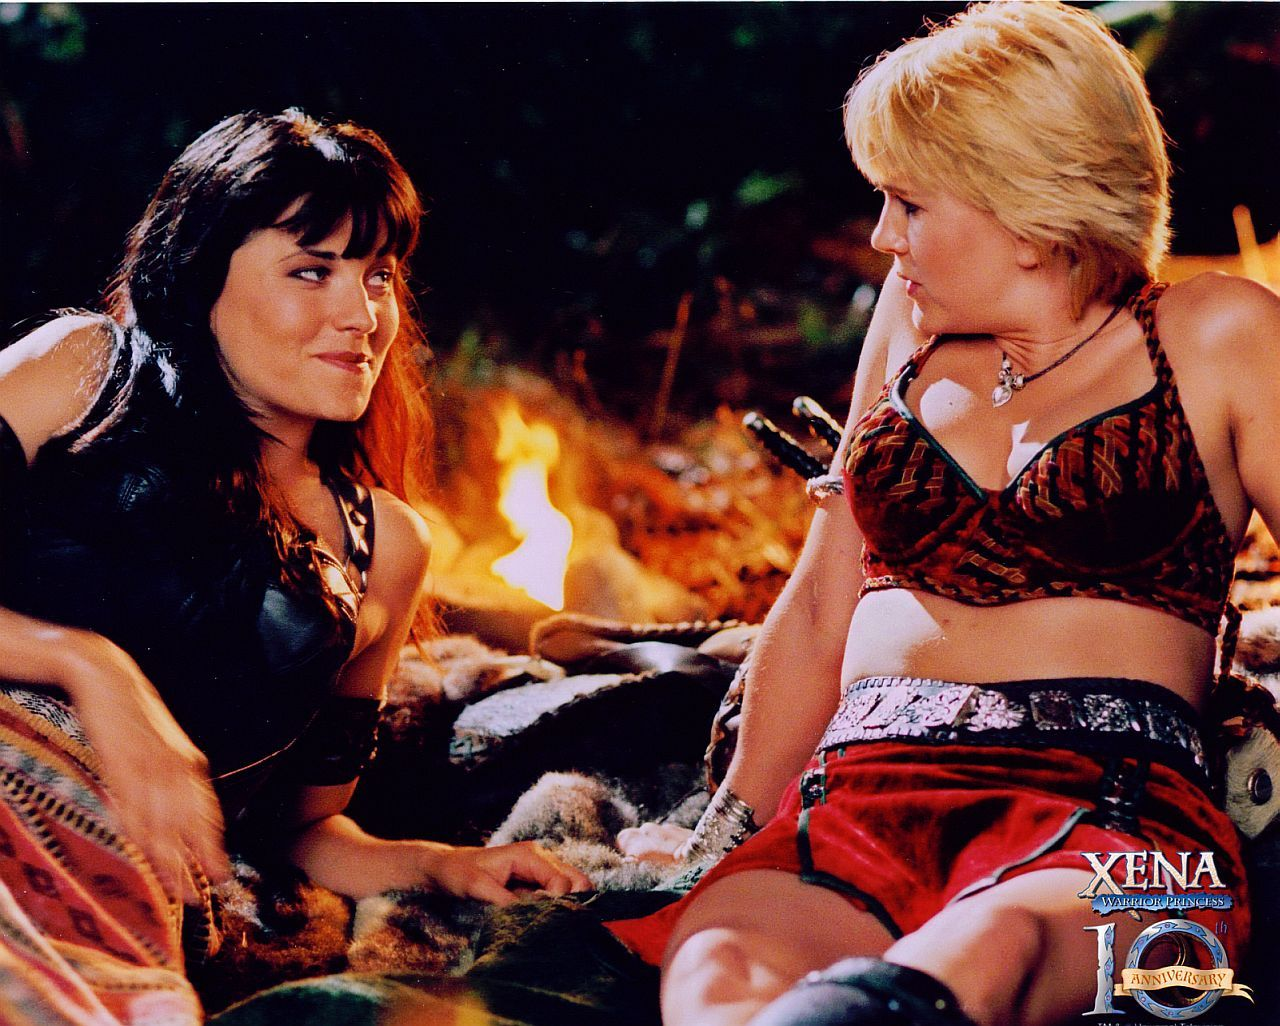 Friend in need xena warrior princess accept. The